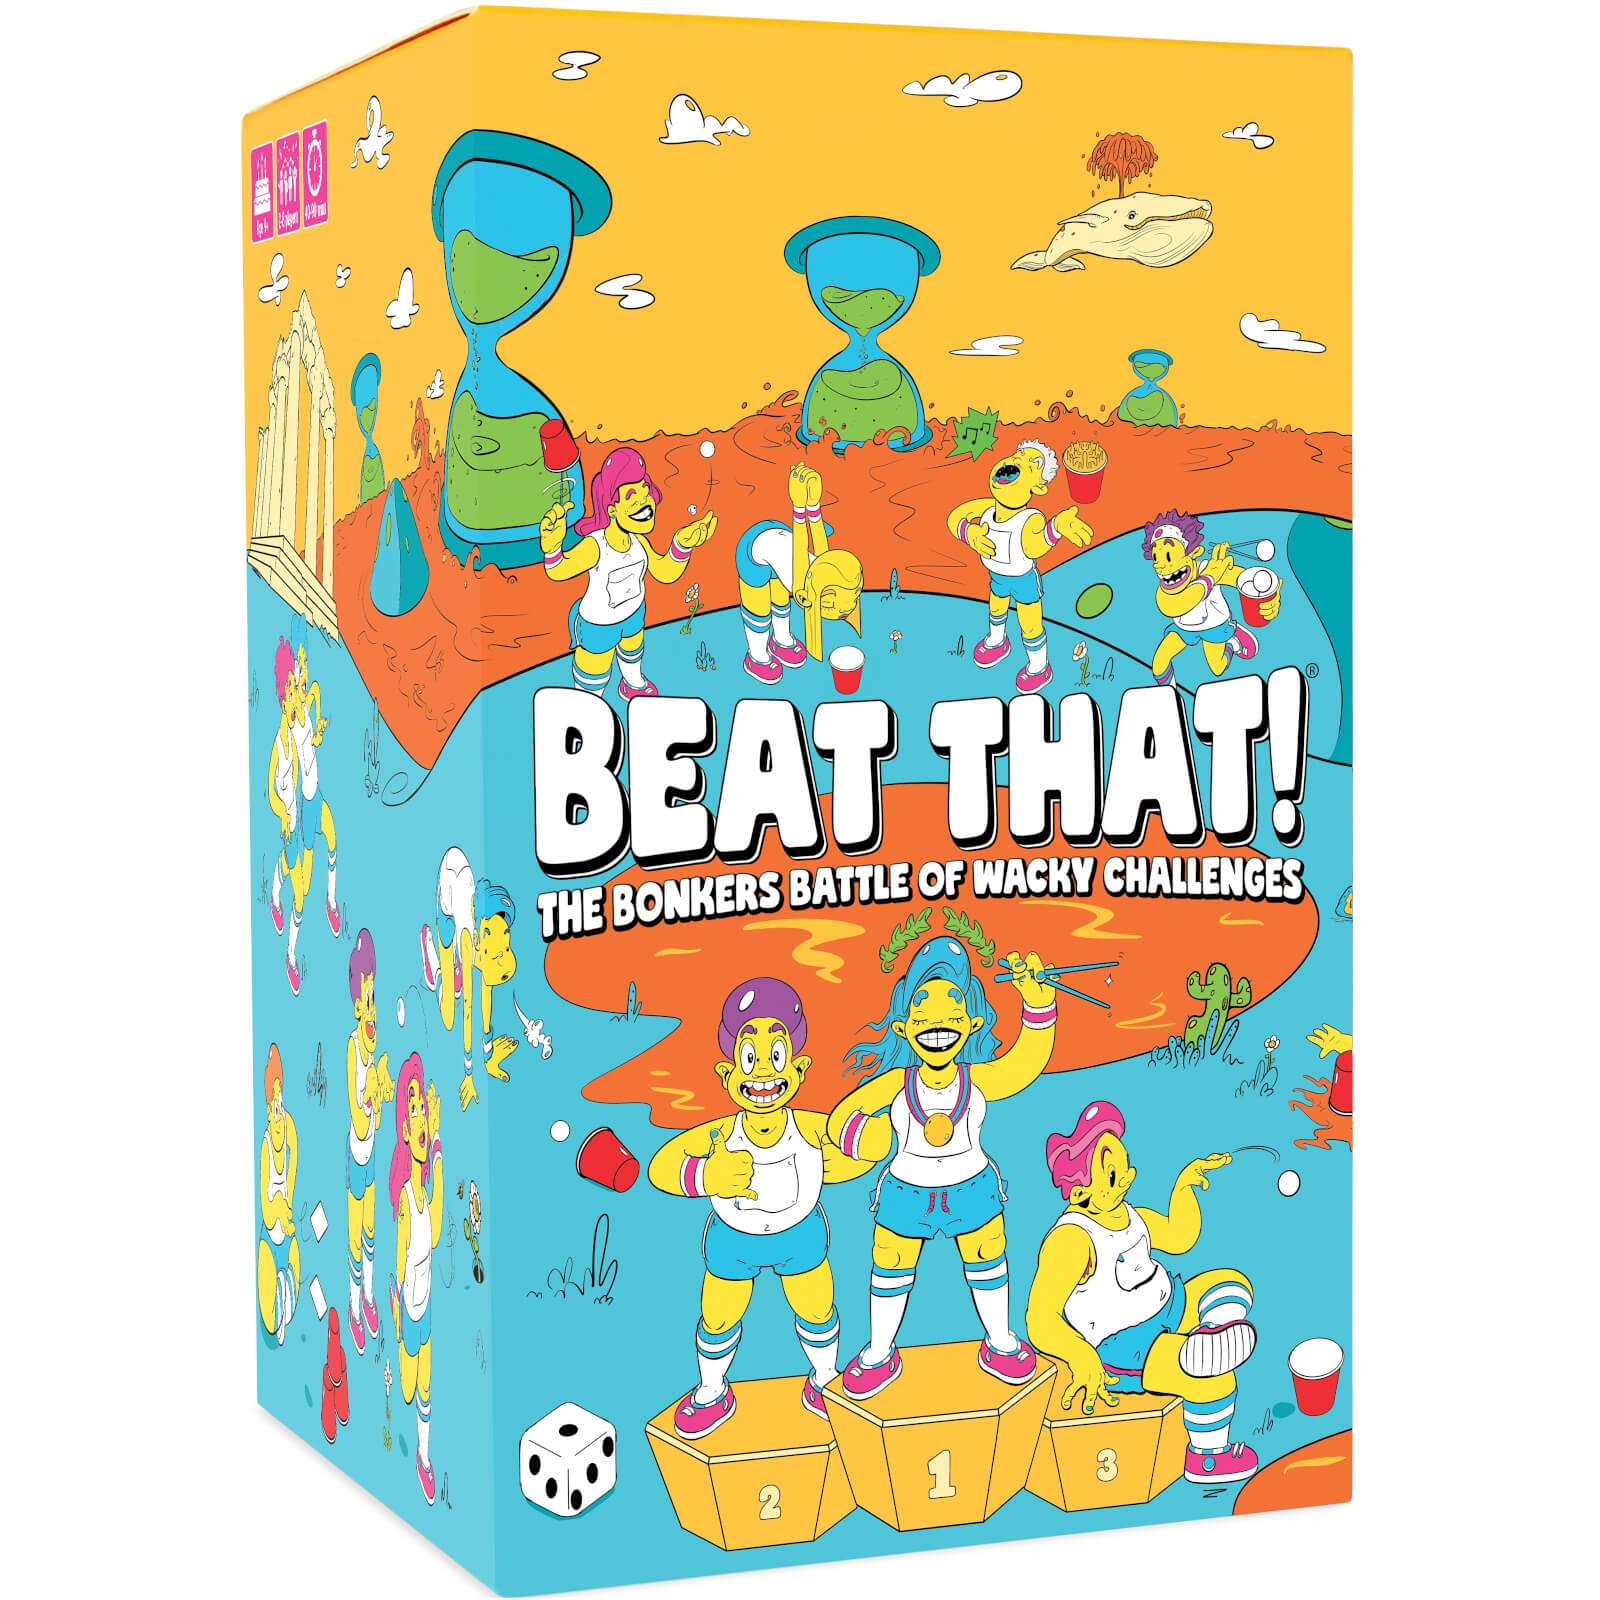 Image of Beat That! The Bonkers Battle of Wacky Challenges Card Game